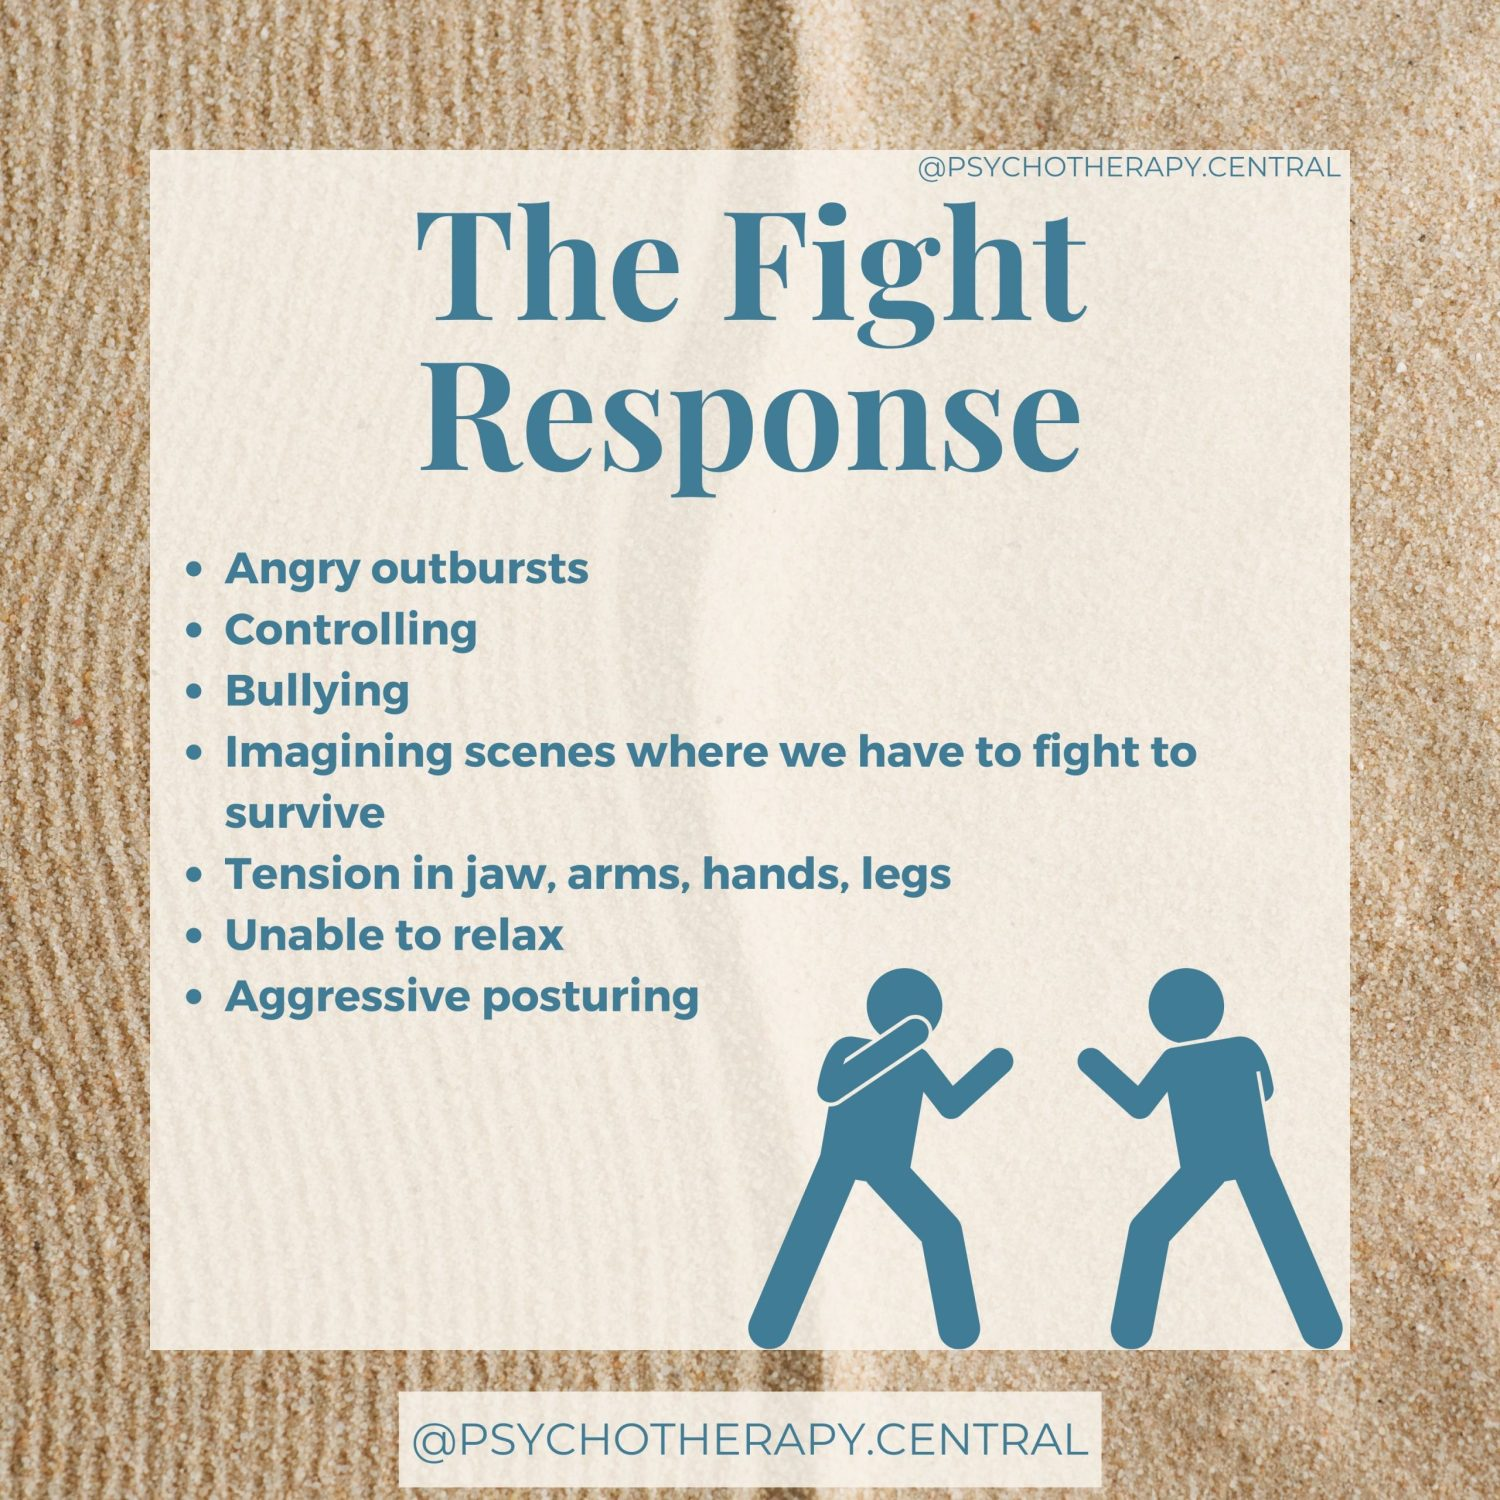 The Fight Response